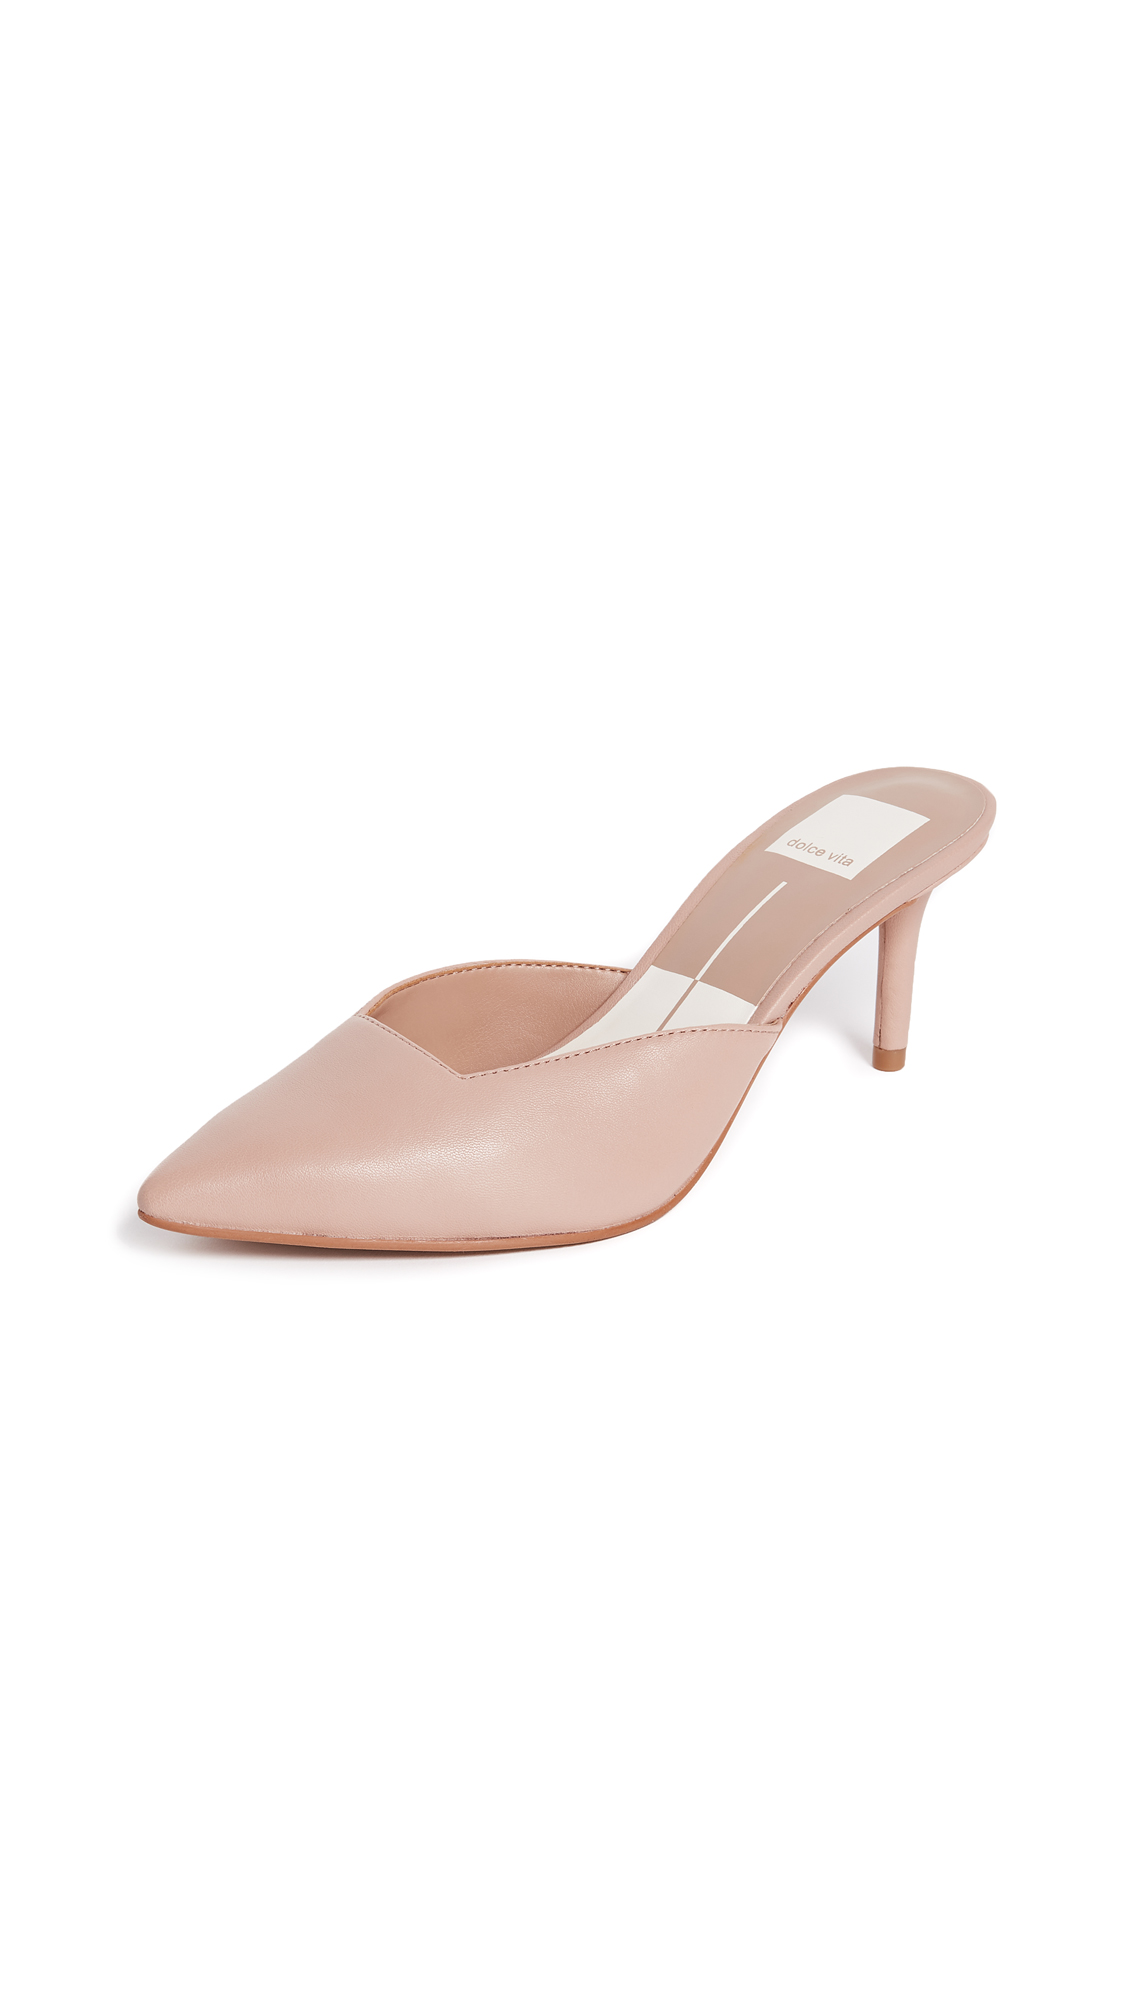 Dolce Vita Rhyme Point Toe Mules - Blush